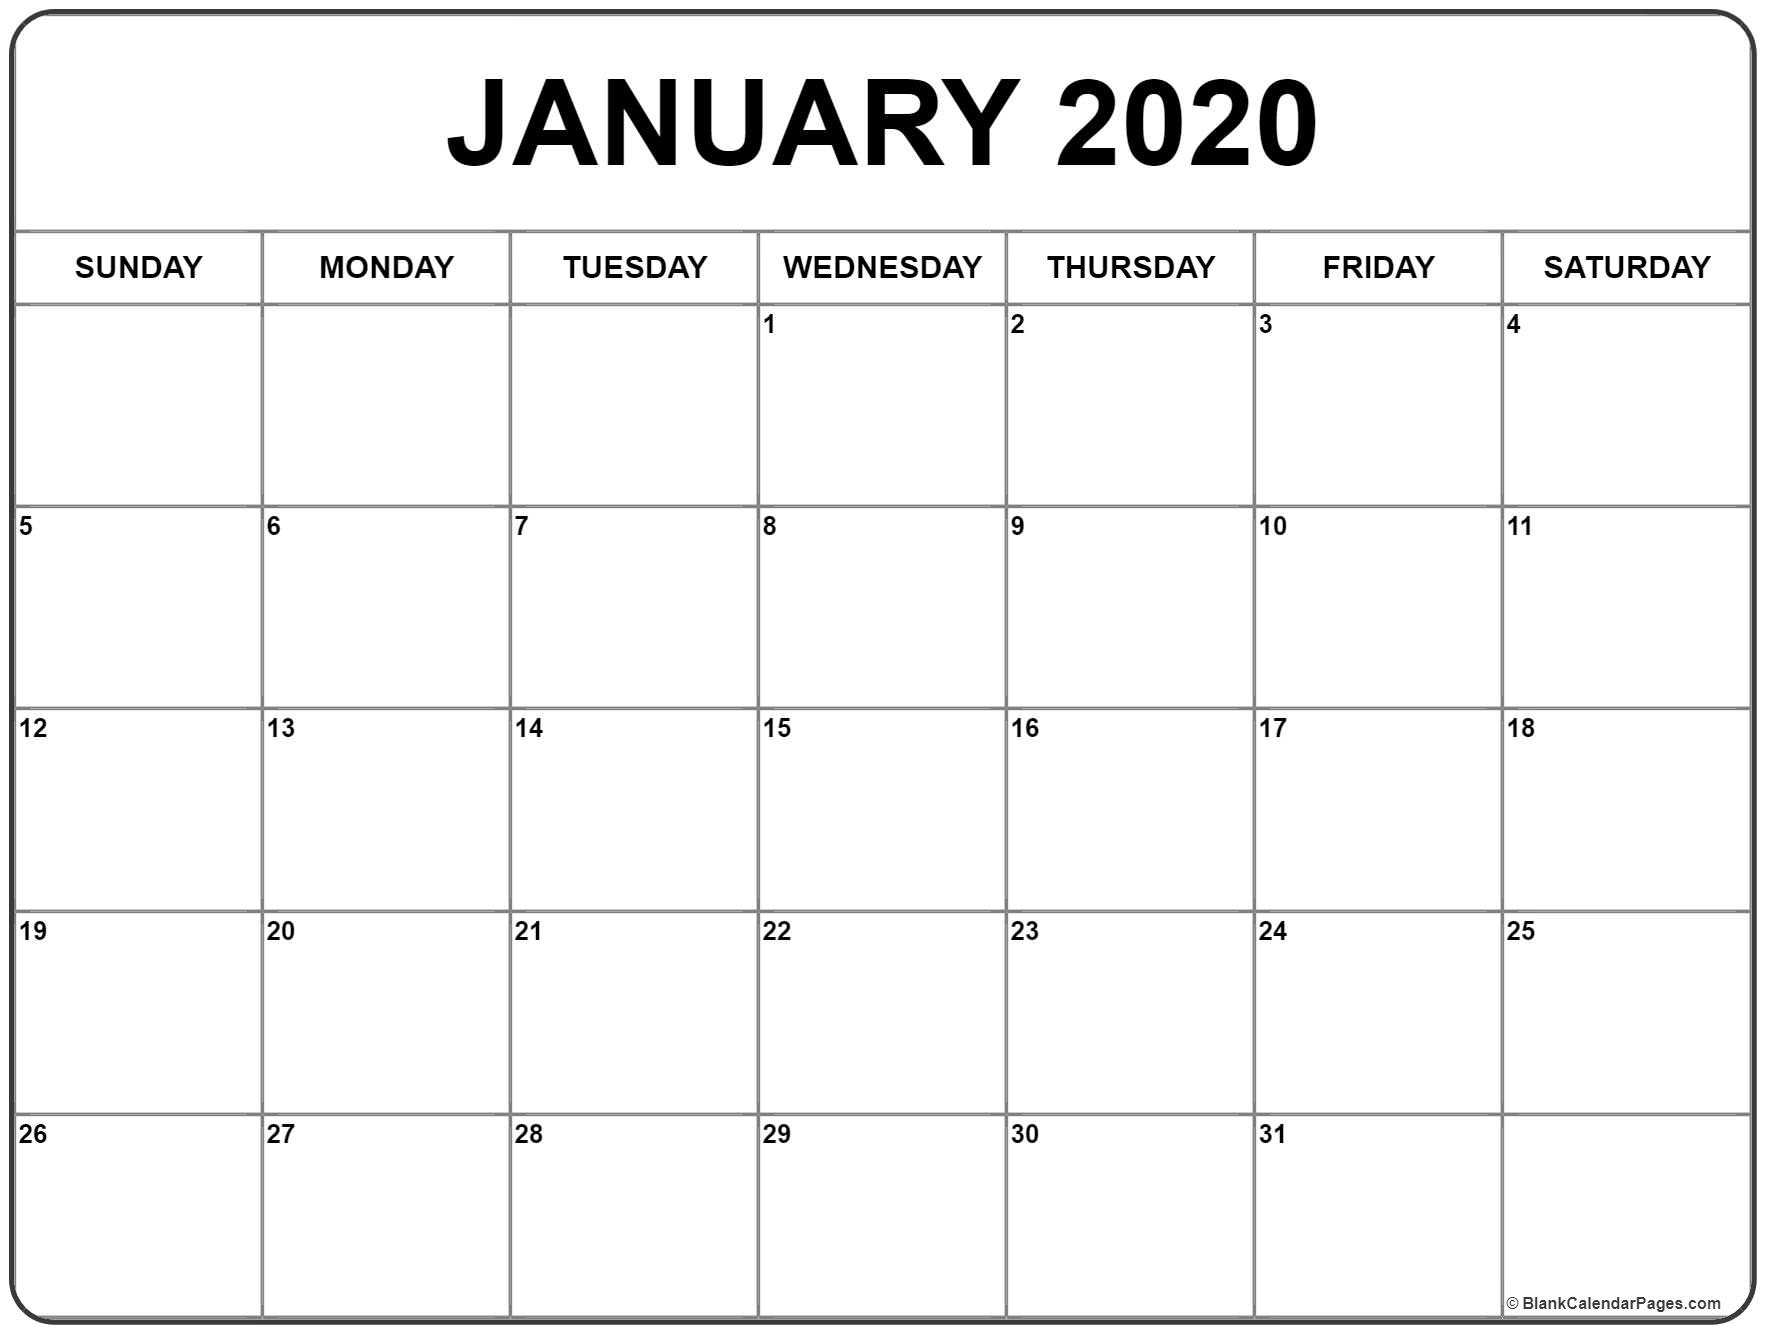 January 2020 Calendar | Free Printable Monthly Calendars_A Blank Calendar For January 2020